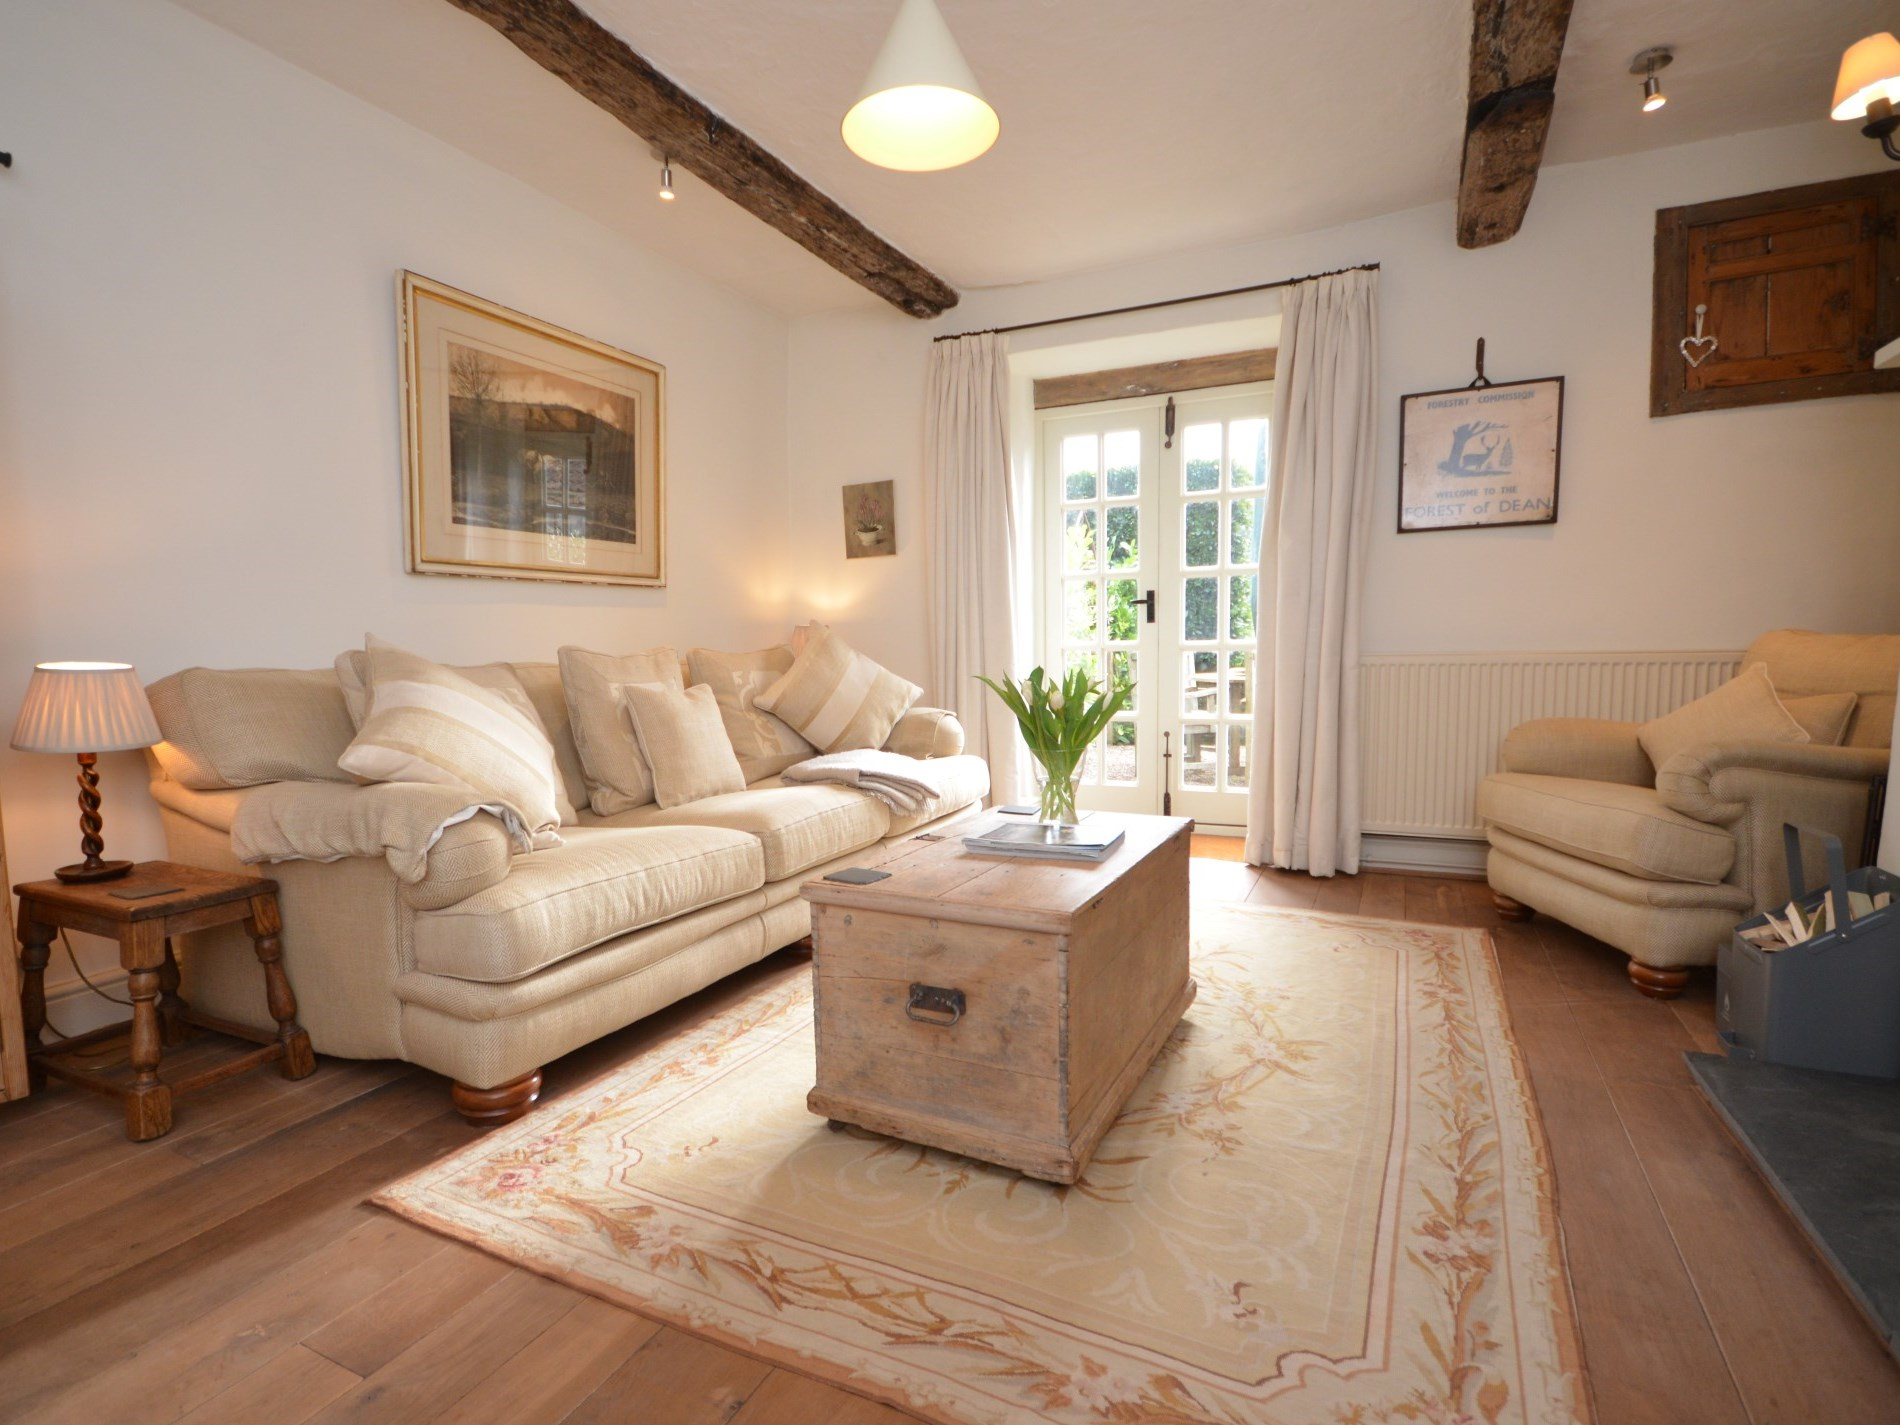 The cottage is a great space for entertaining